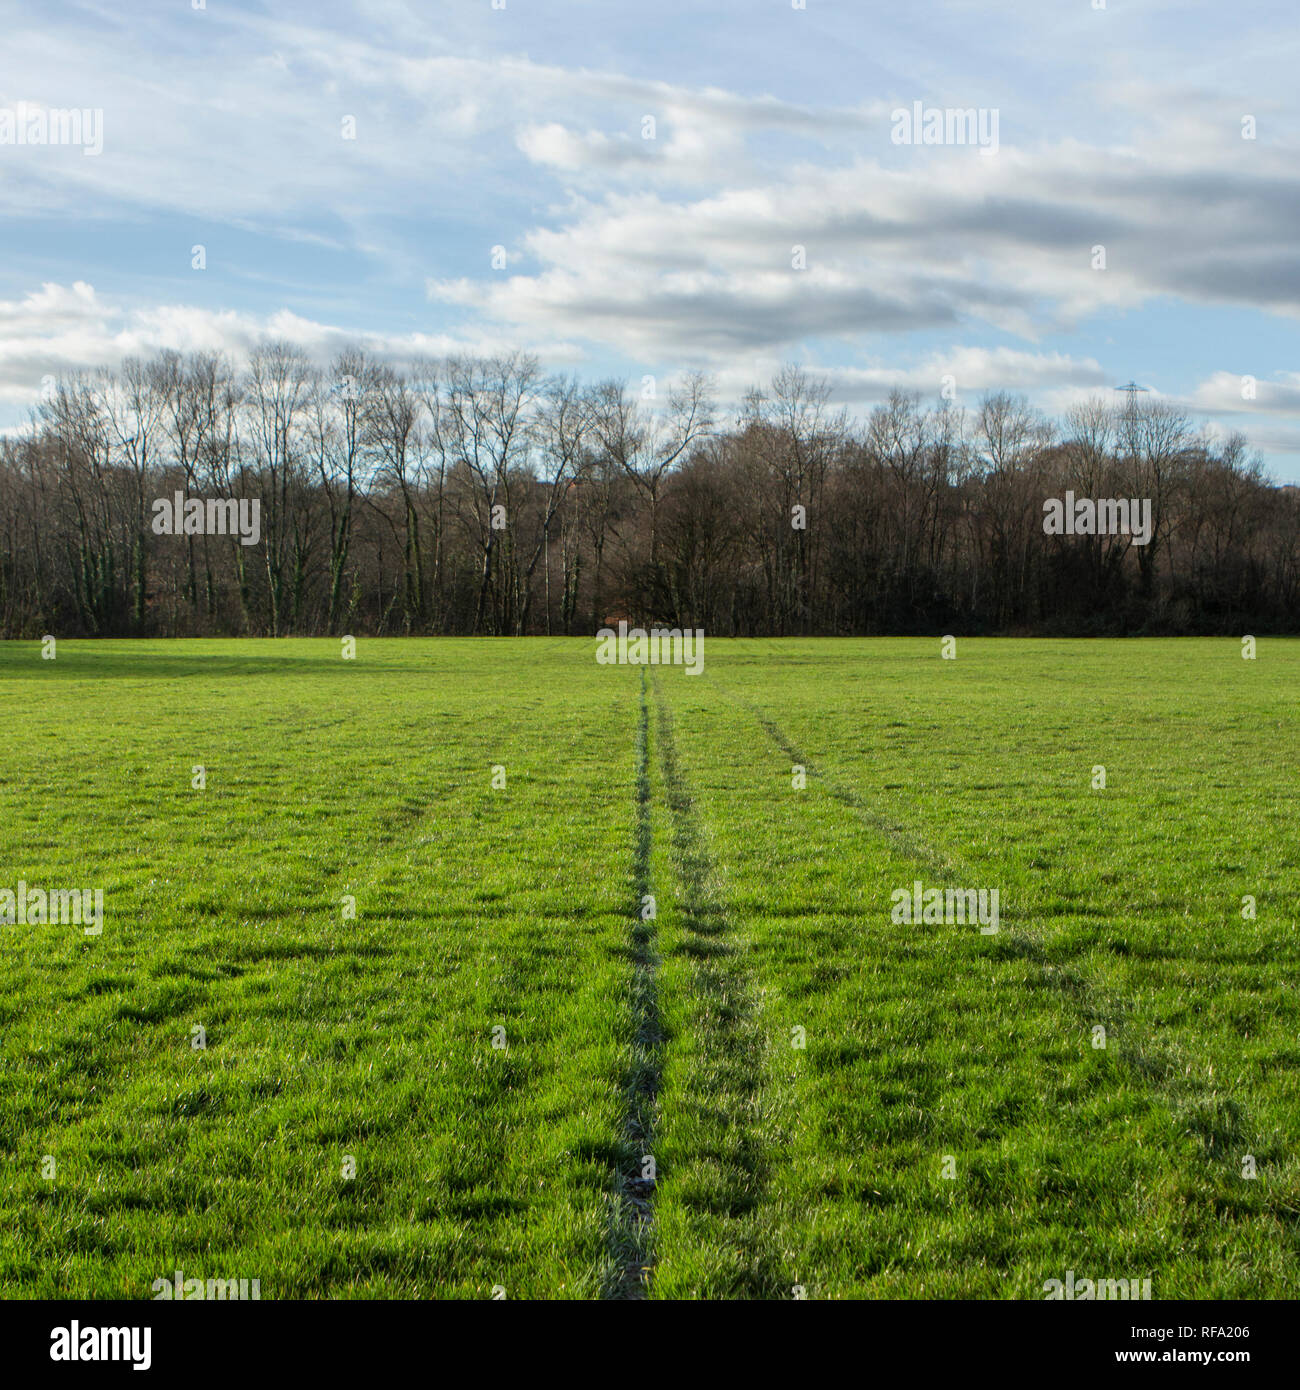 Study on the rugby pitch at Llandaff, Cardiff. - Stock Image